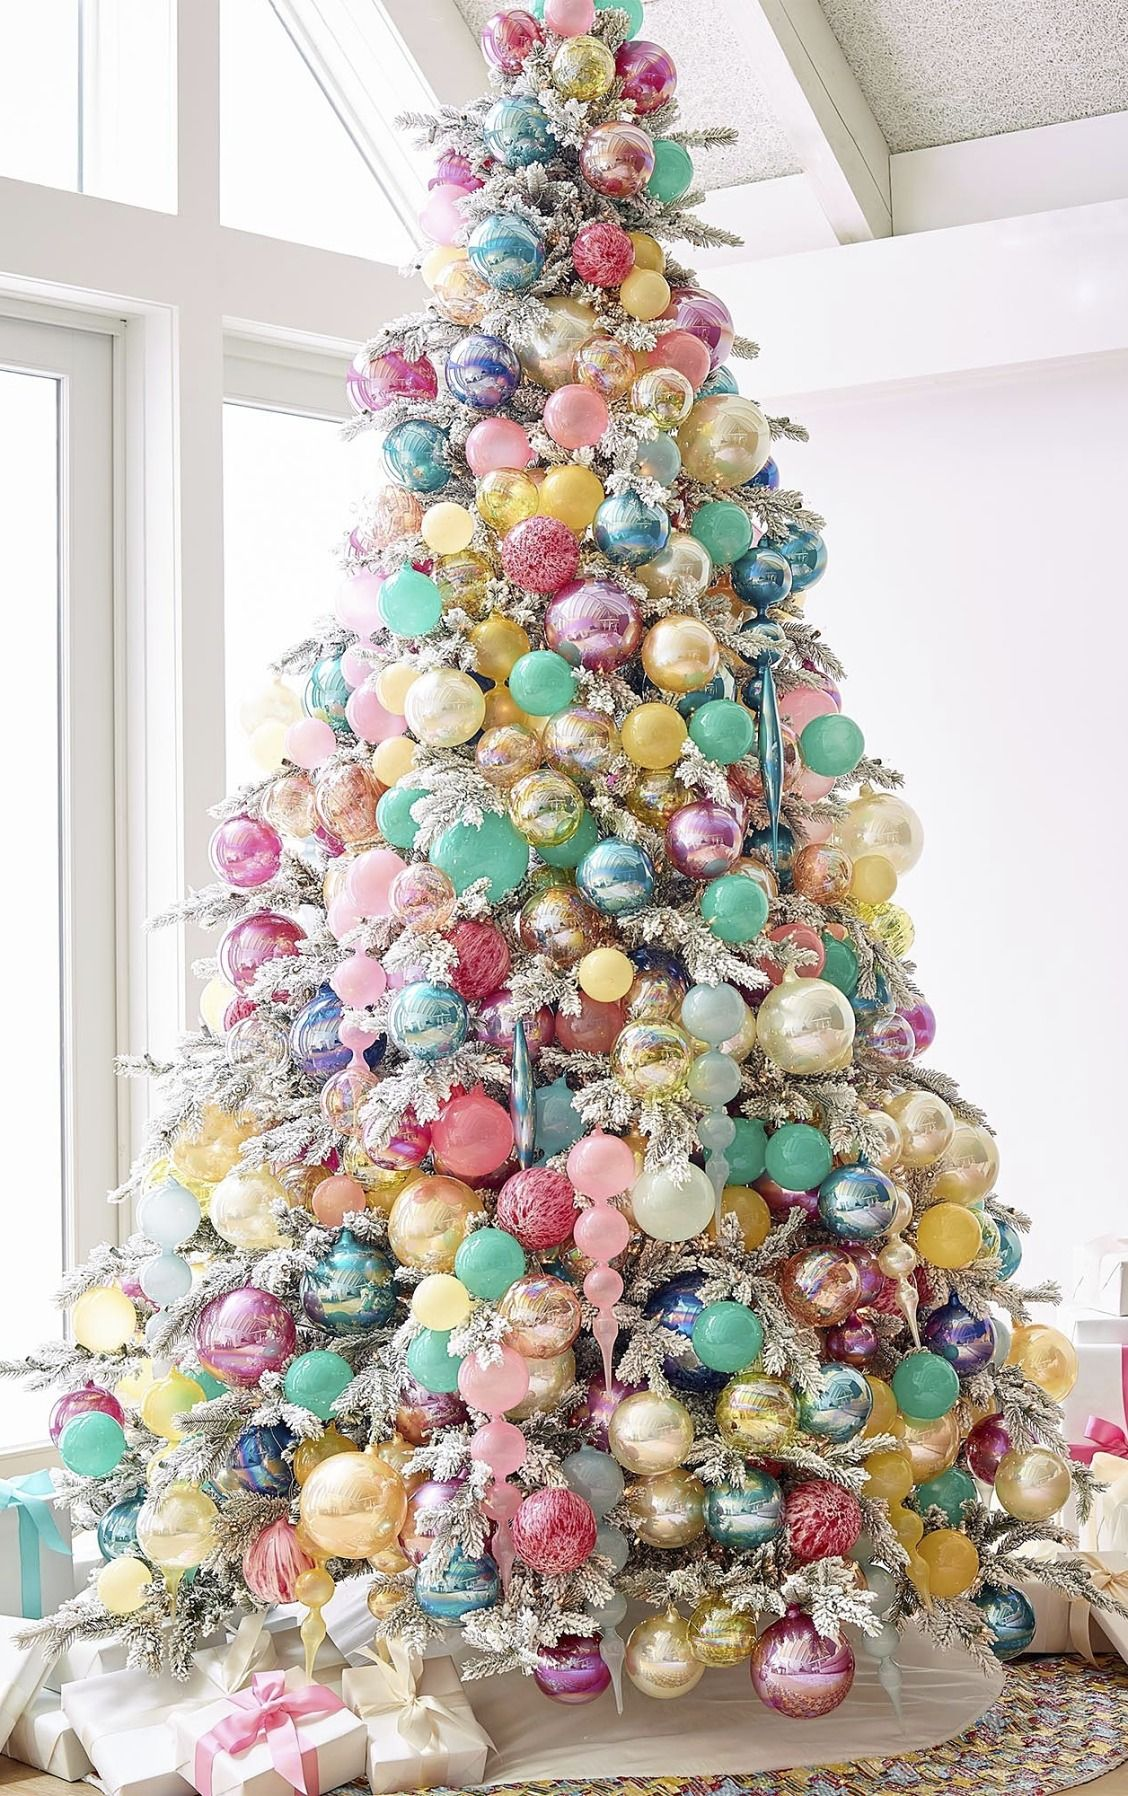 Jim Marvin's hand-blown glass ornaments. He decorated the White House for 20 Christmases You can Add Santa to Your photos. Try it out for Free at Capturethemagic.com